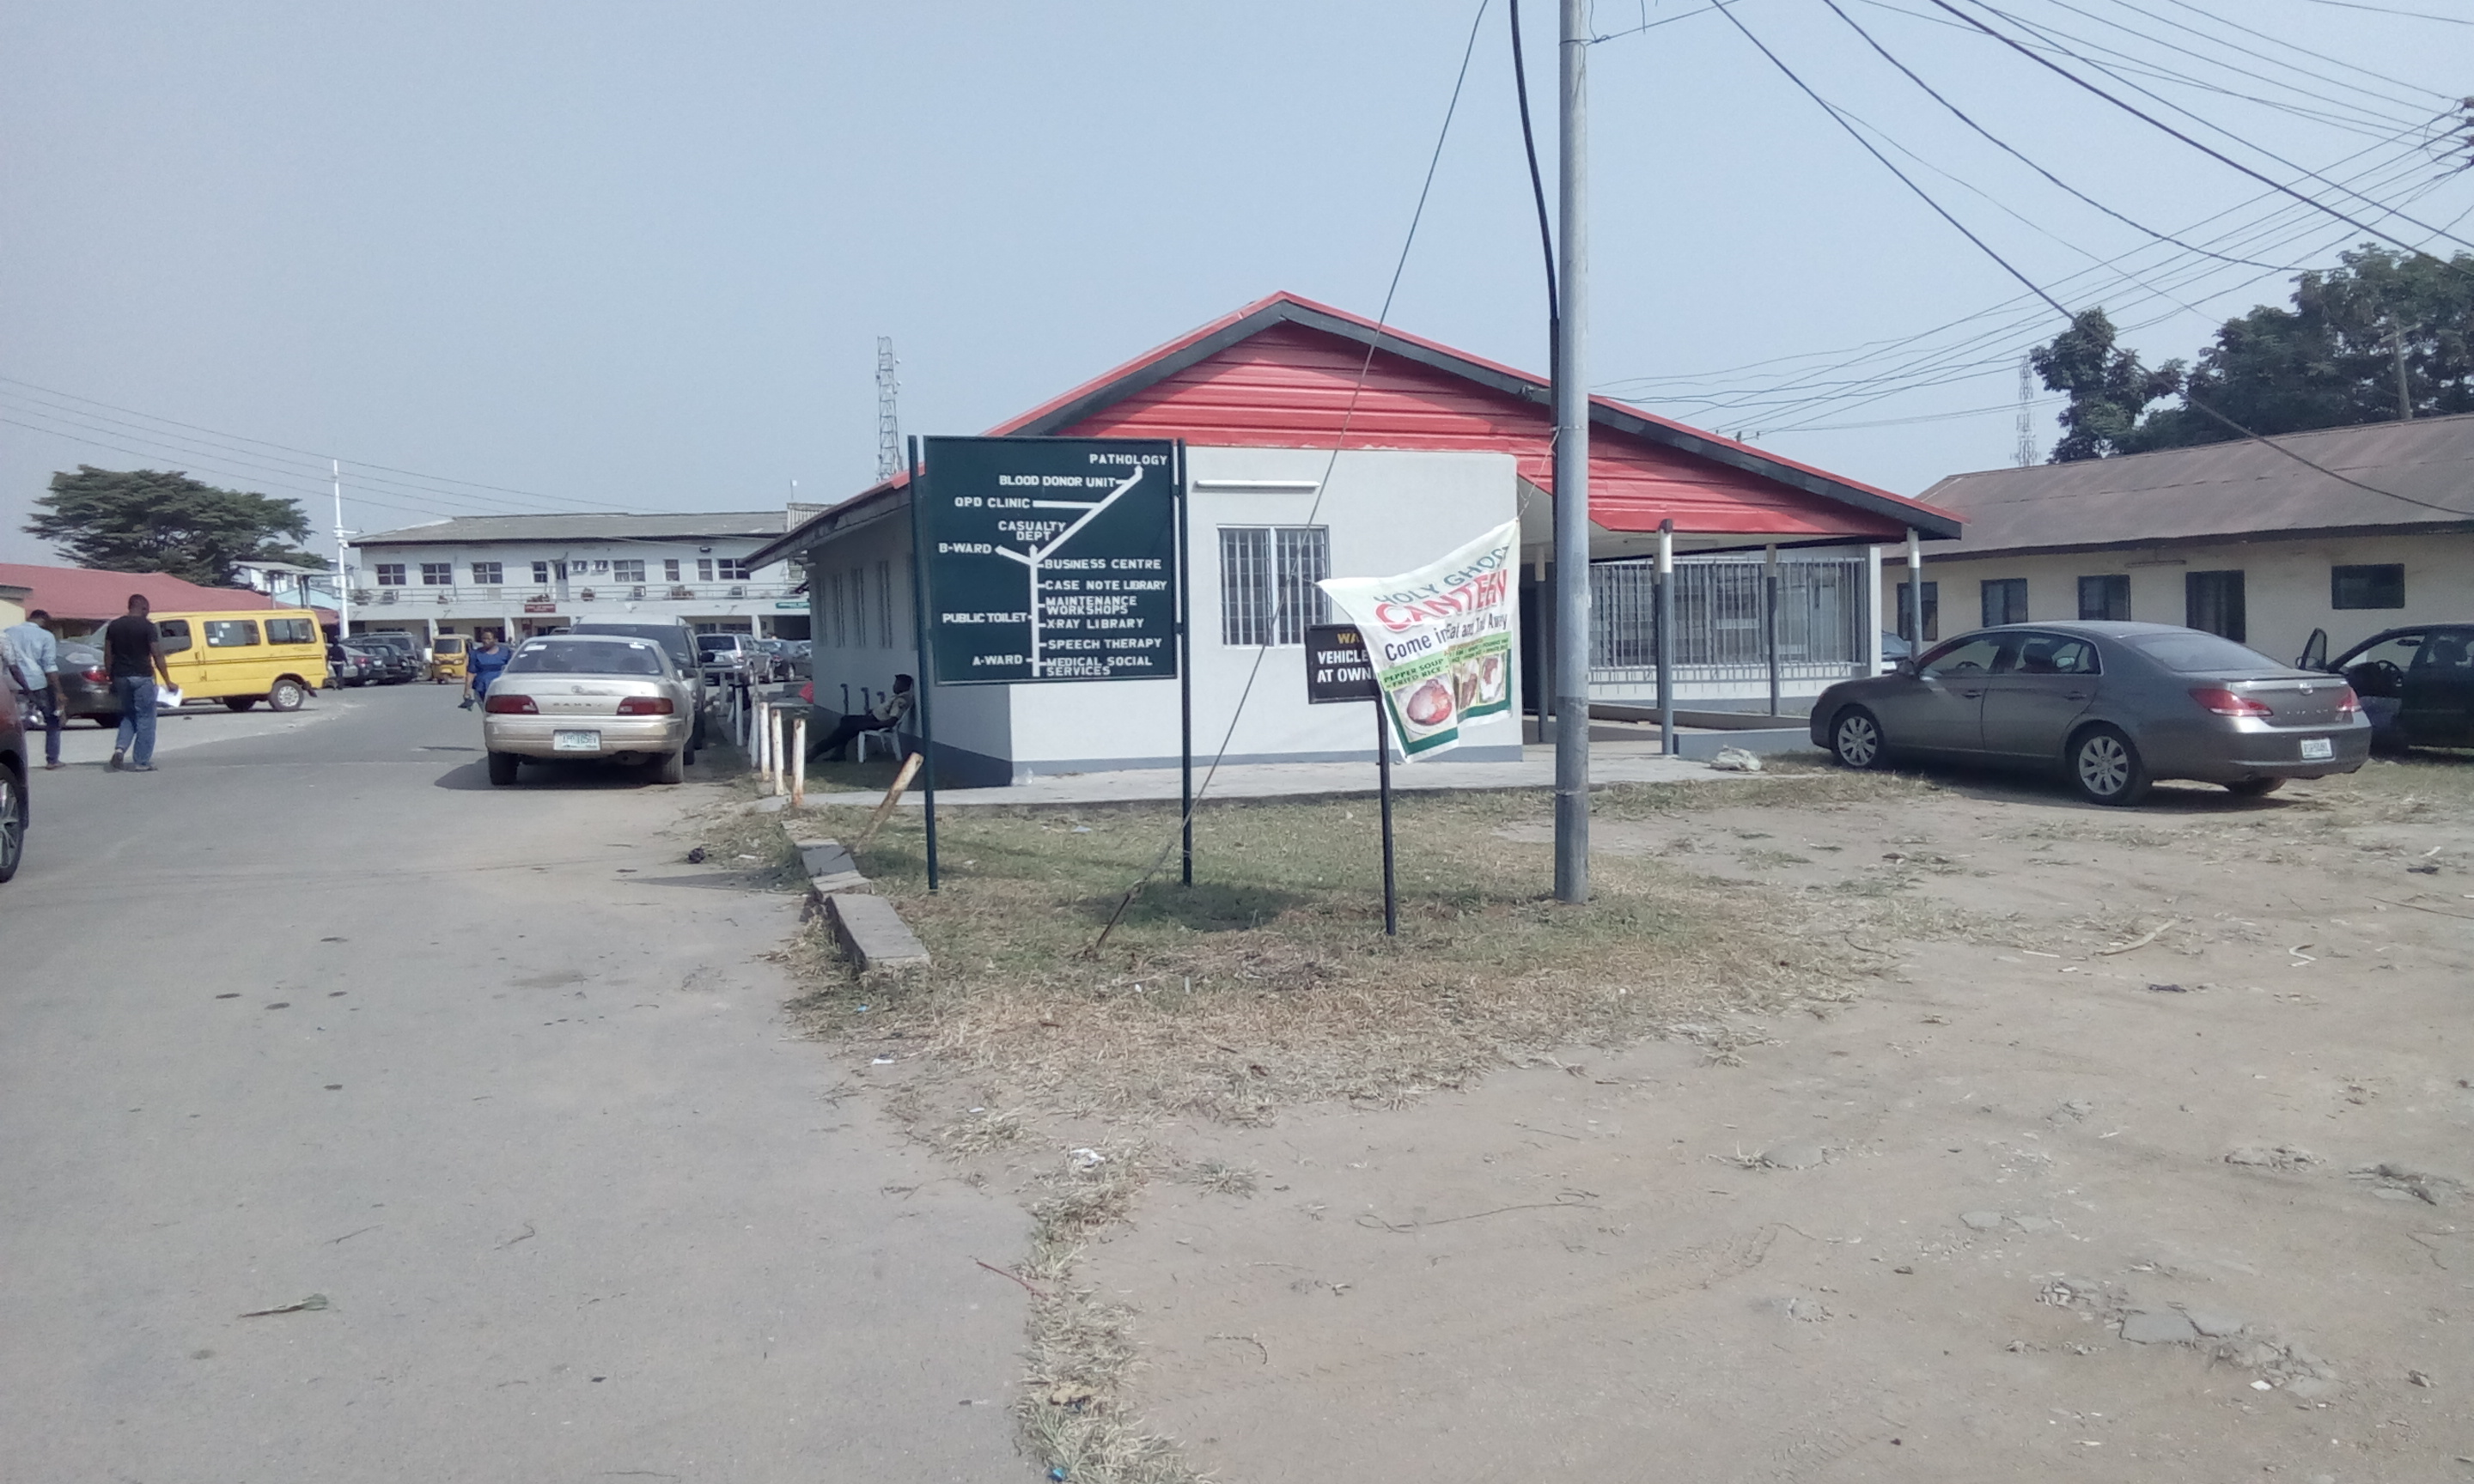 PATIENTS BEWARE: AT IGBOBI ORTHOPEDIC HOSPITAL, A  BED SPACE COSTS N10,000 IN 20 MINUTES